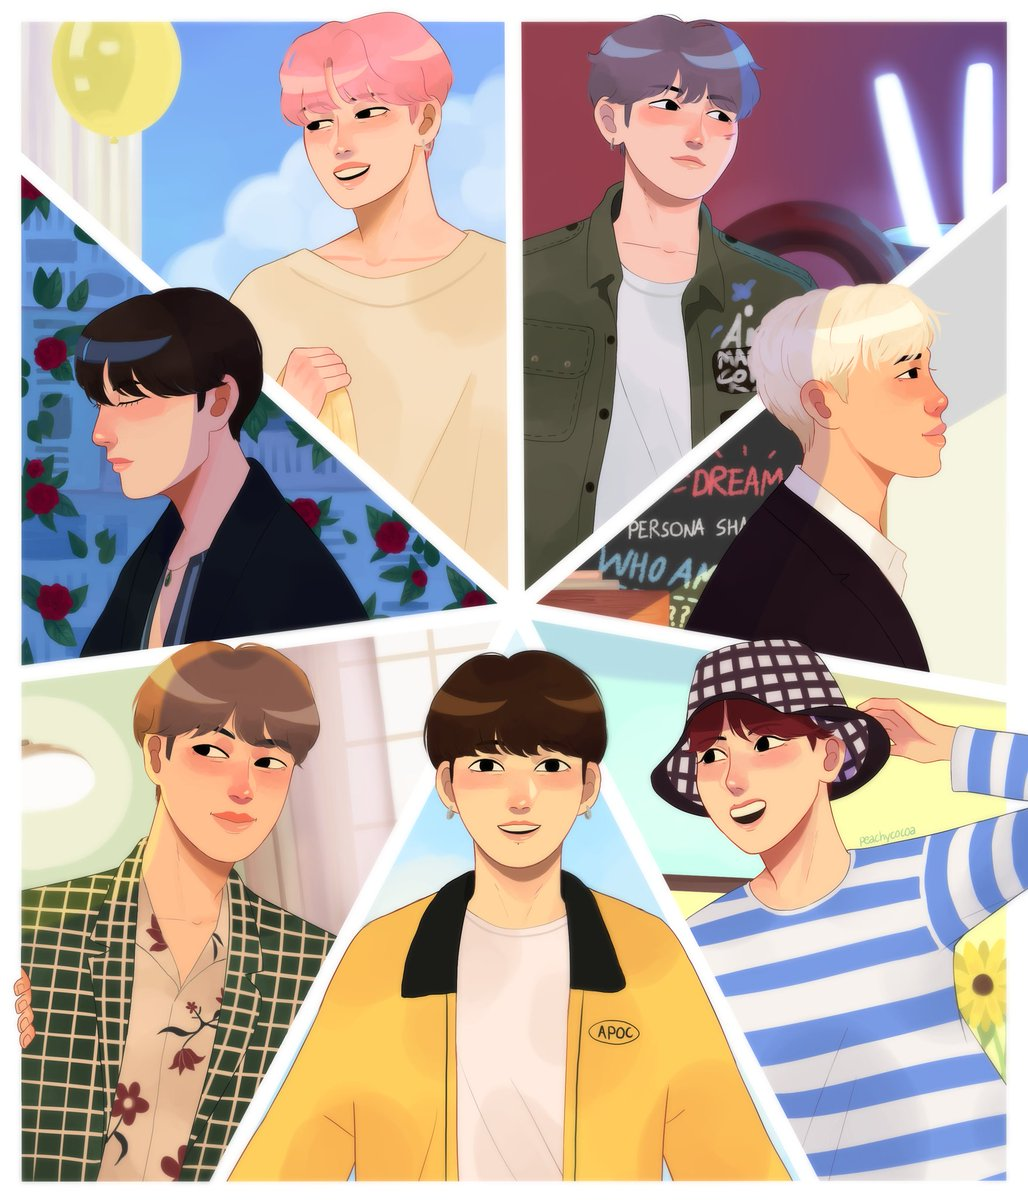 Extremely late for this, but happy 6th anniversary BTS!  #btsfanart #6YearsWithOurHomeBTS #BTSFESTA2019 #btsartmy<br>http://pic.twitter.com/1dsOdaAgj2